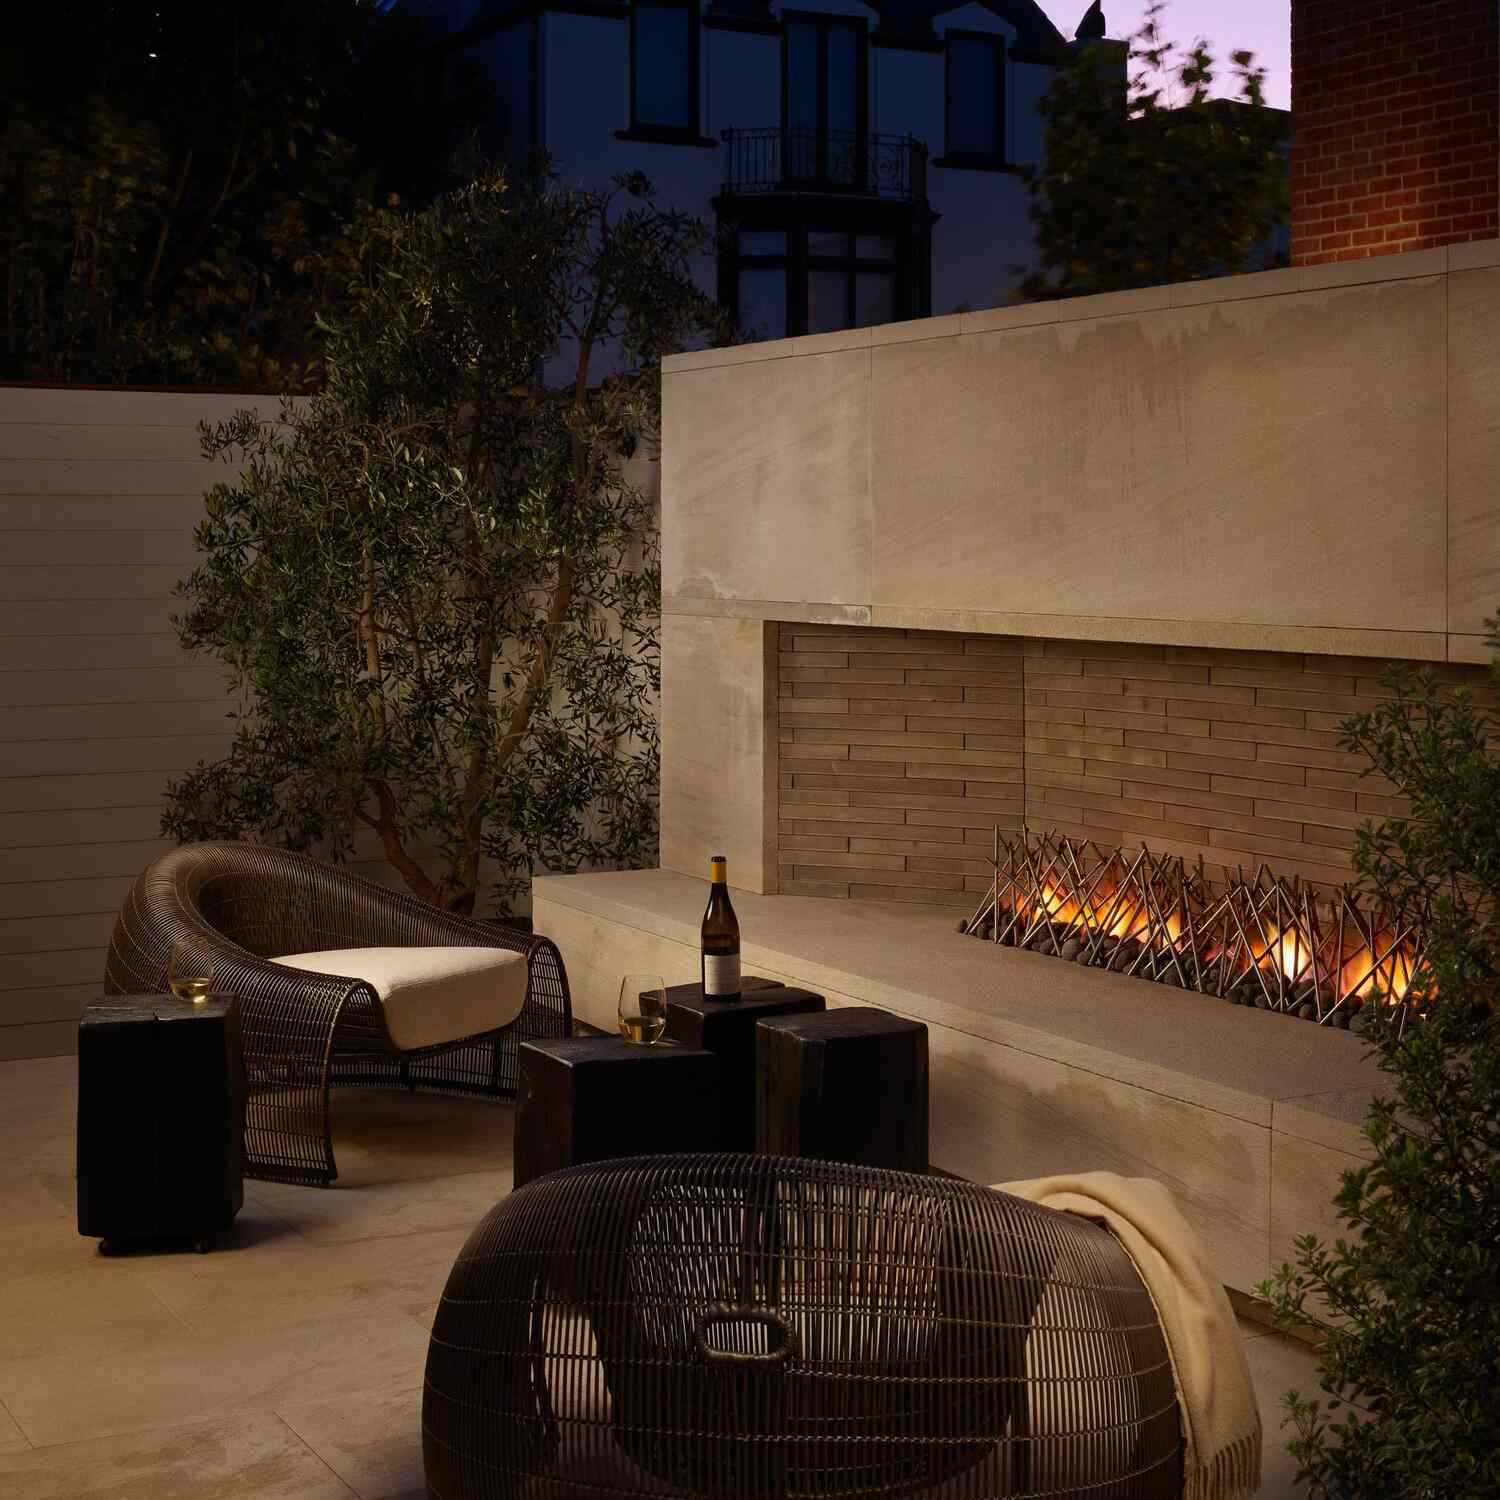 An outdoor fireplace filled with wire sticks, which are evoked by the wire-lined lounge chairs placed nearby